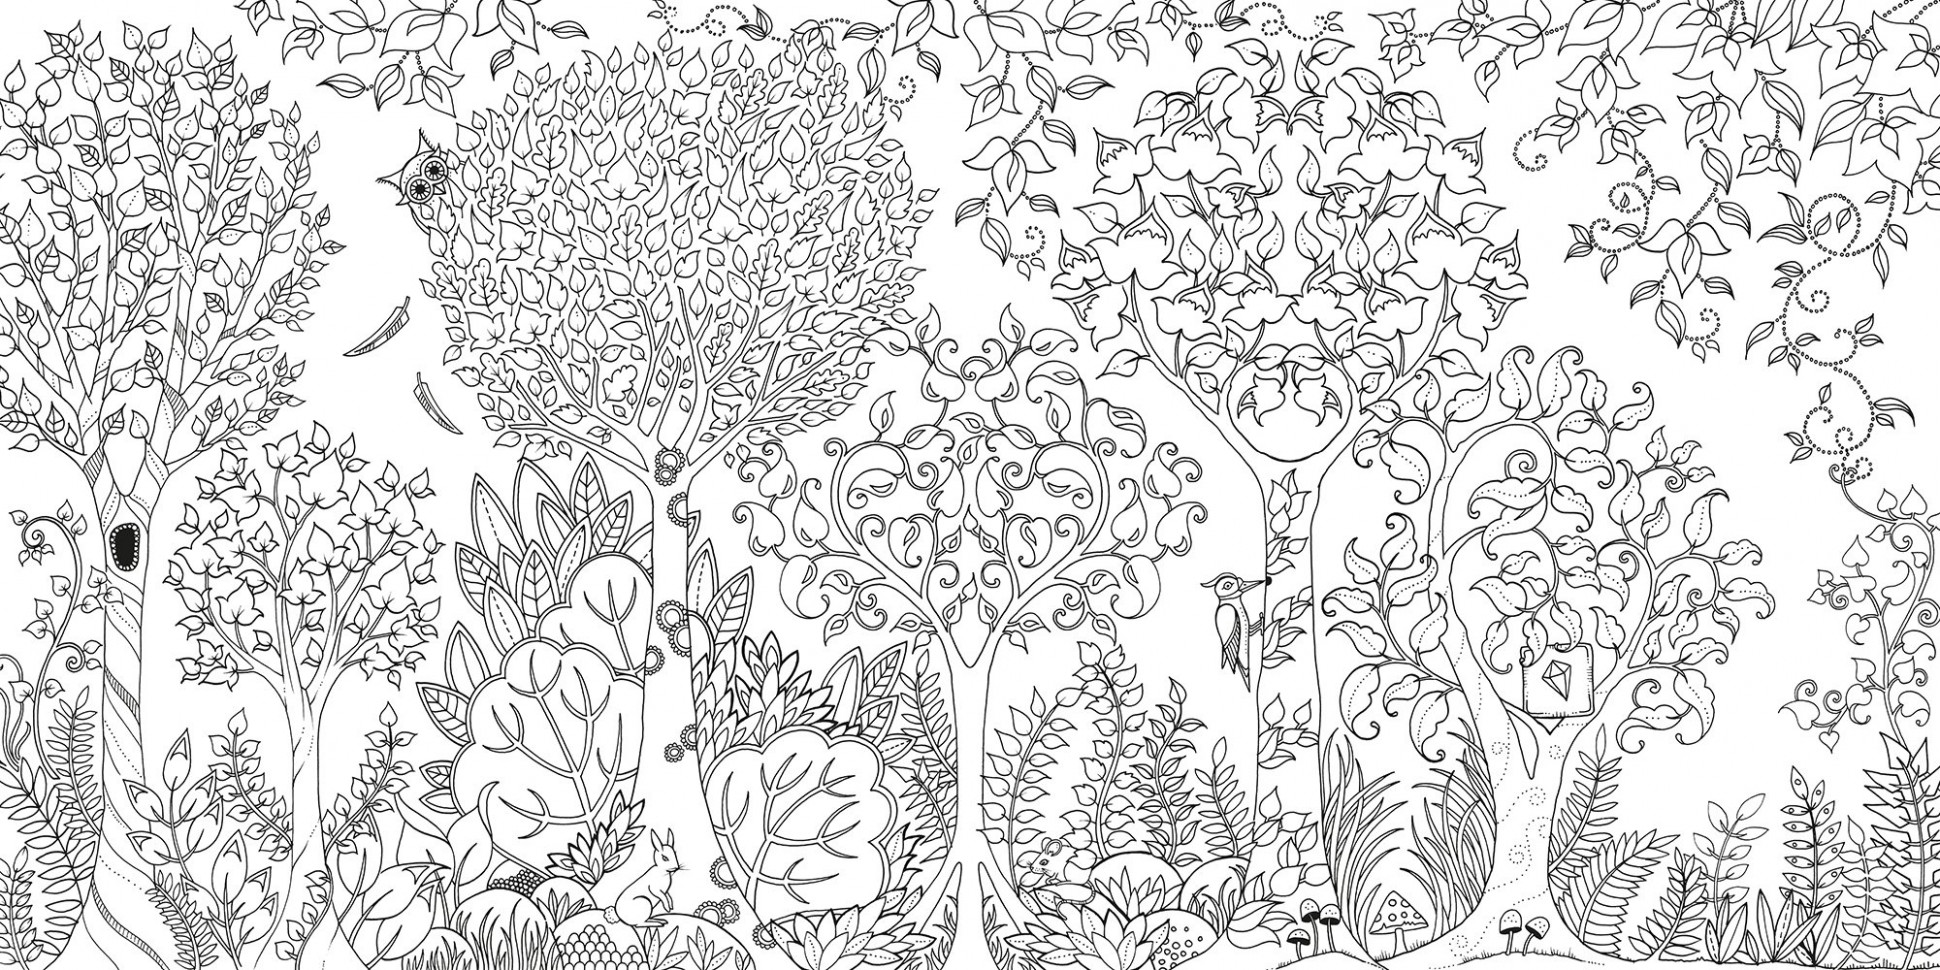 Enchanted Forest Colouring Book | Finlee  – enchanted forest coloring book